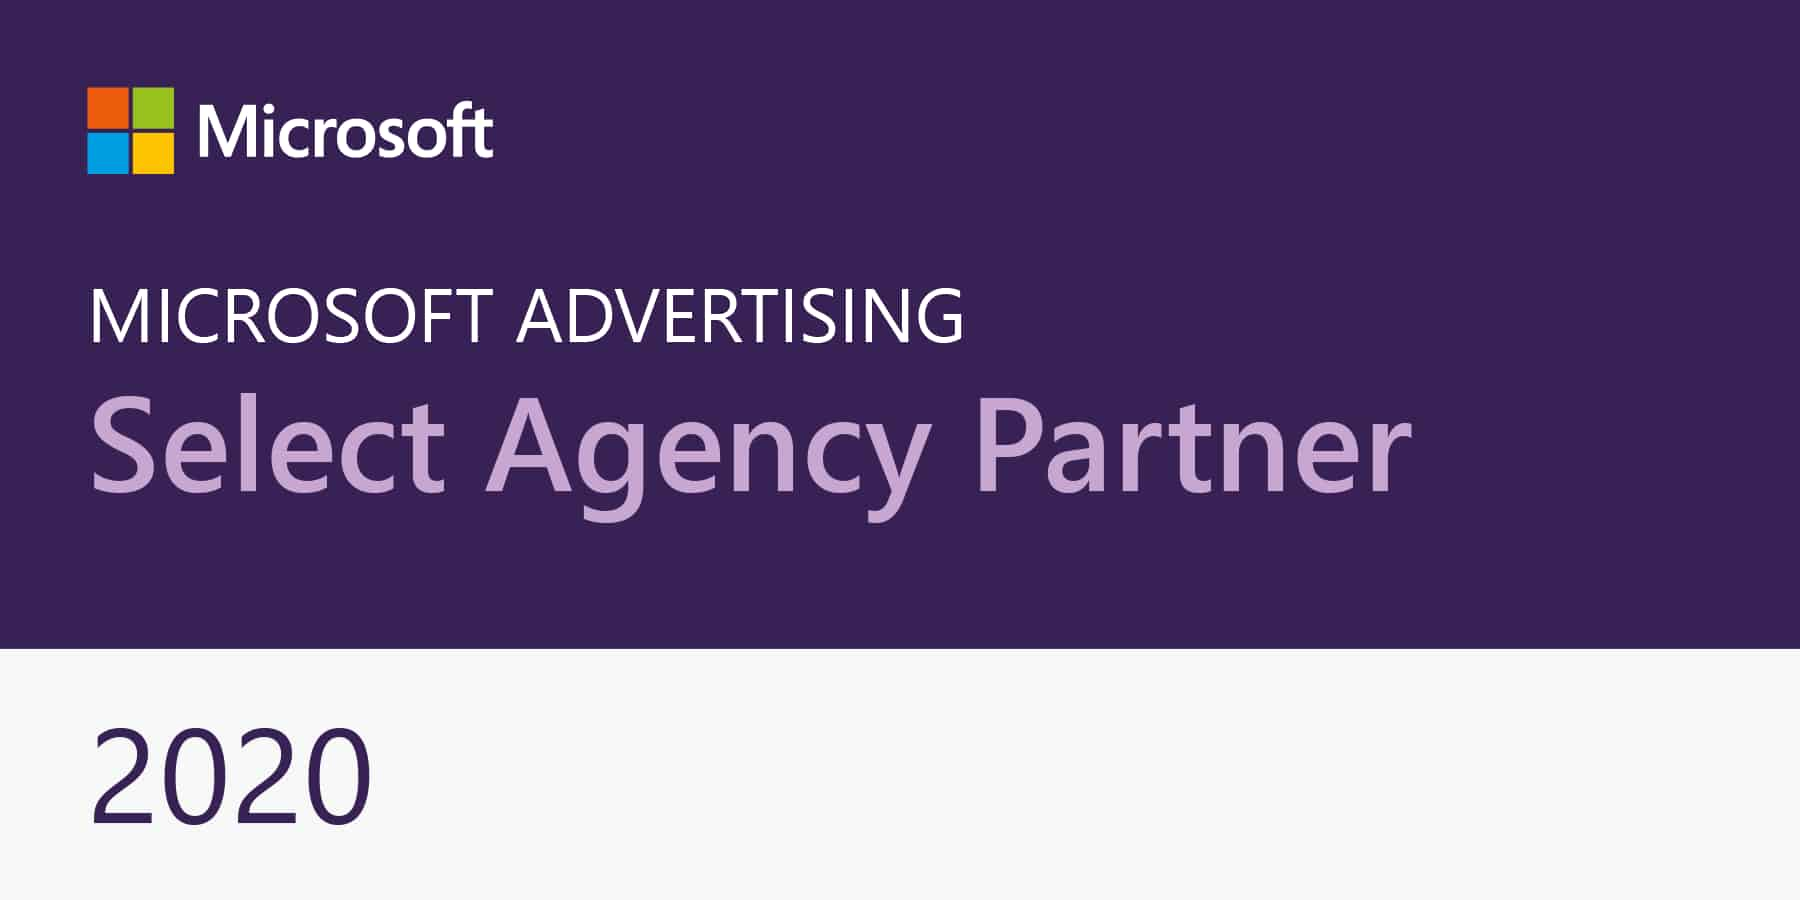 Select agency partner